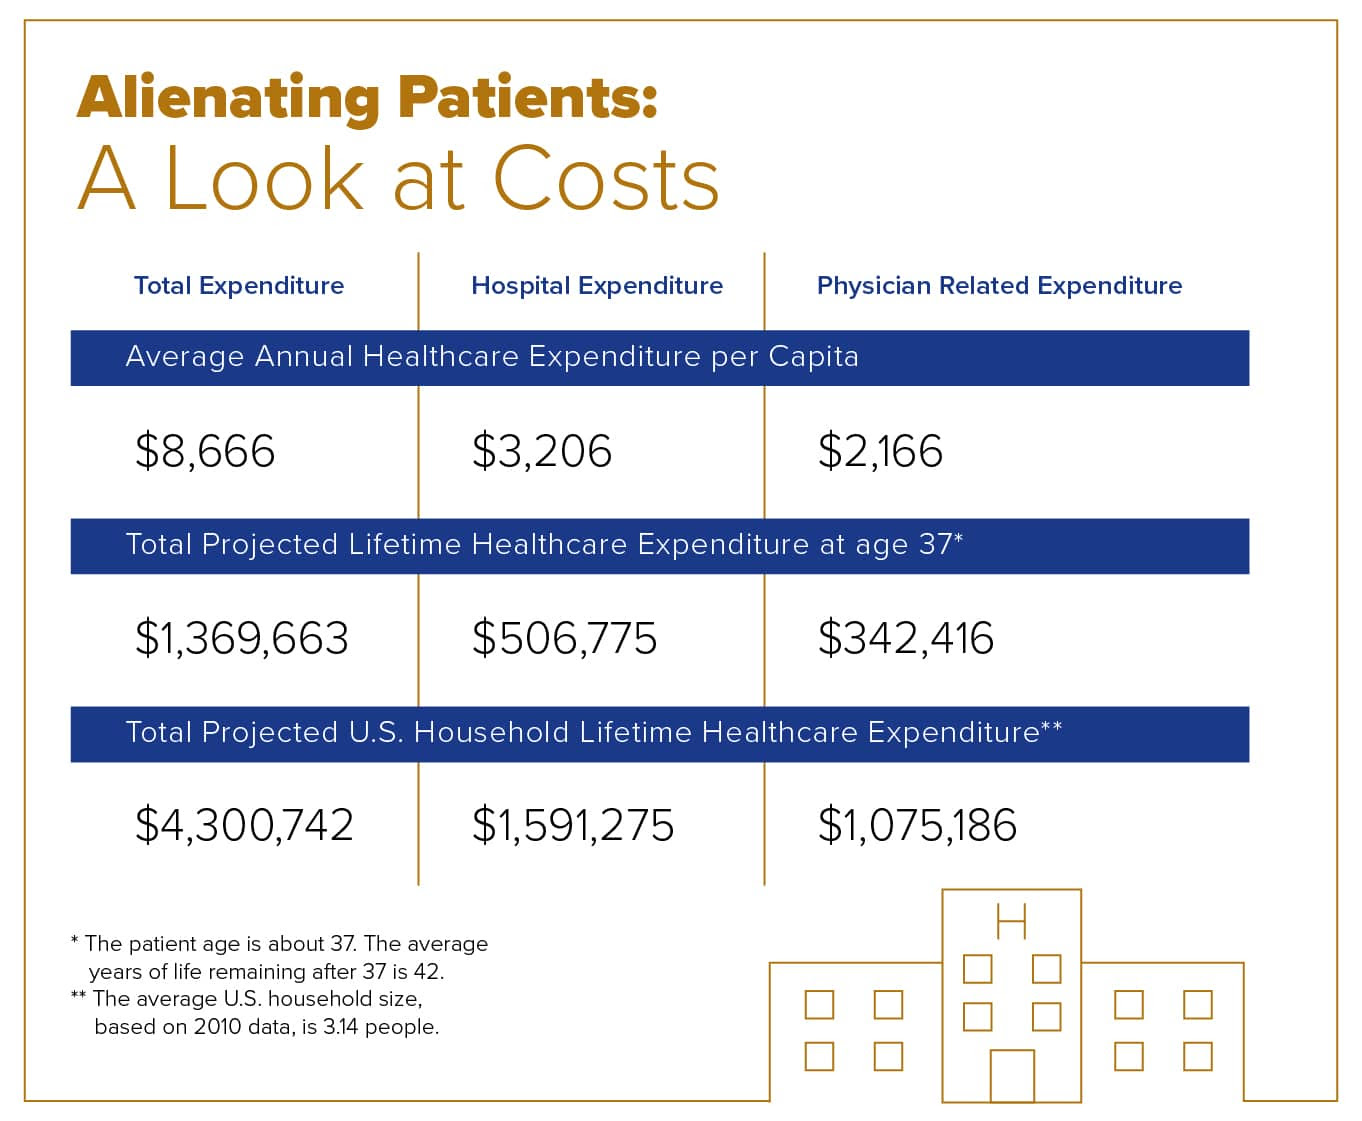 A breakdown of the cost of alienating patients.